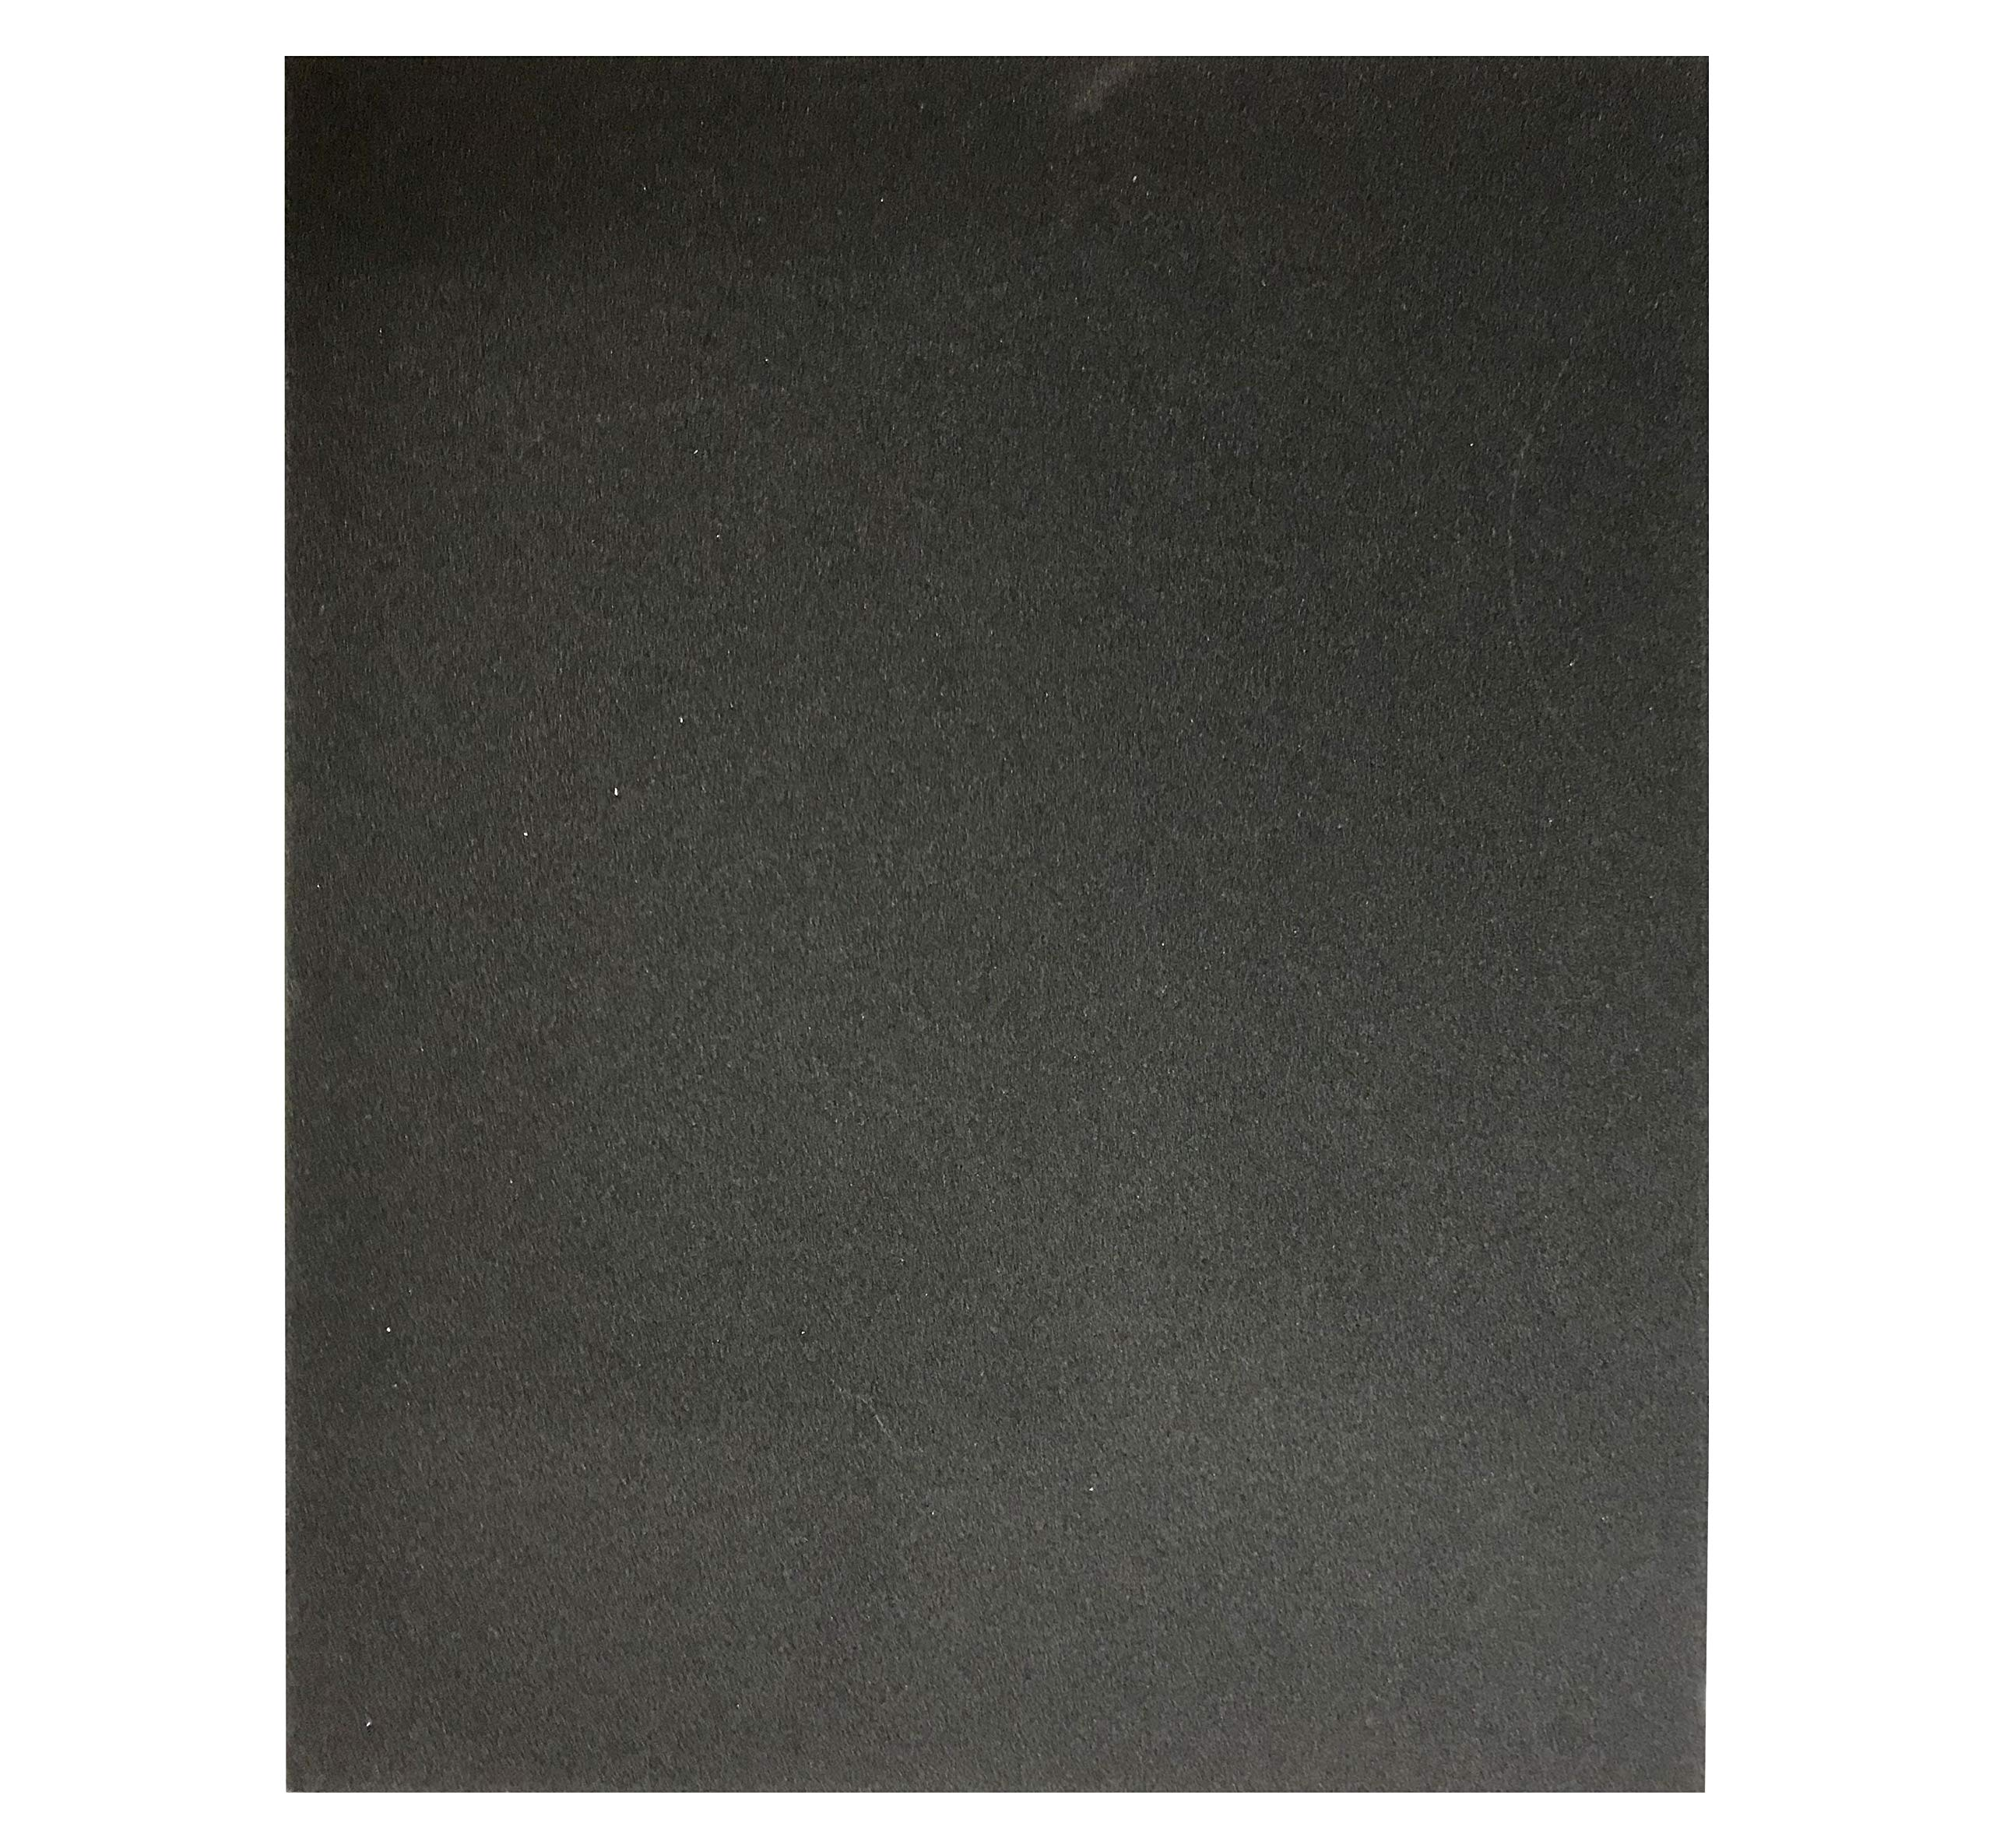 3M Sand Paper 1000 Grit Wet and Dry (Black) (Pack of 5) (B07WPL4ZK8) Amazon Price History, Amazon Price Tracker